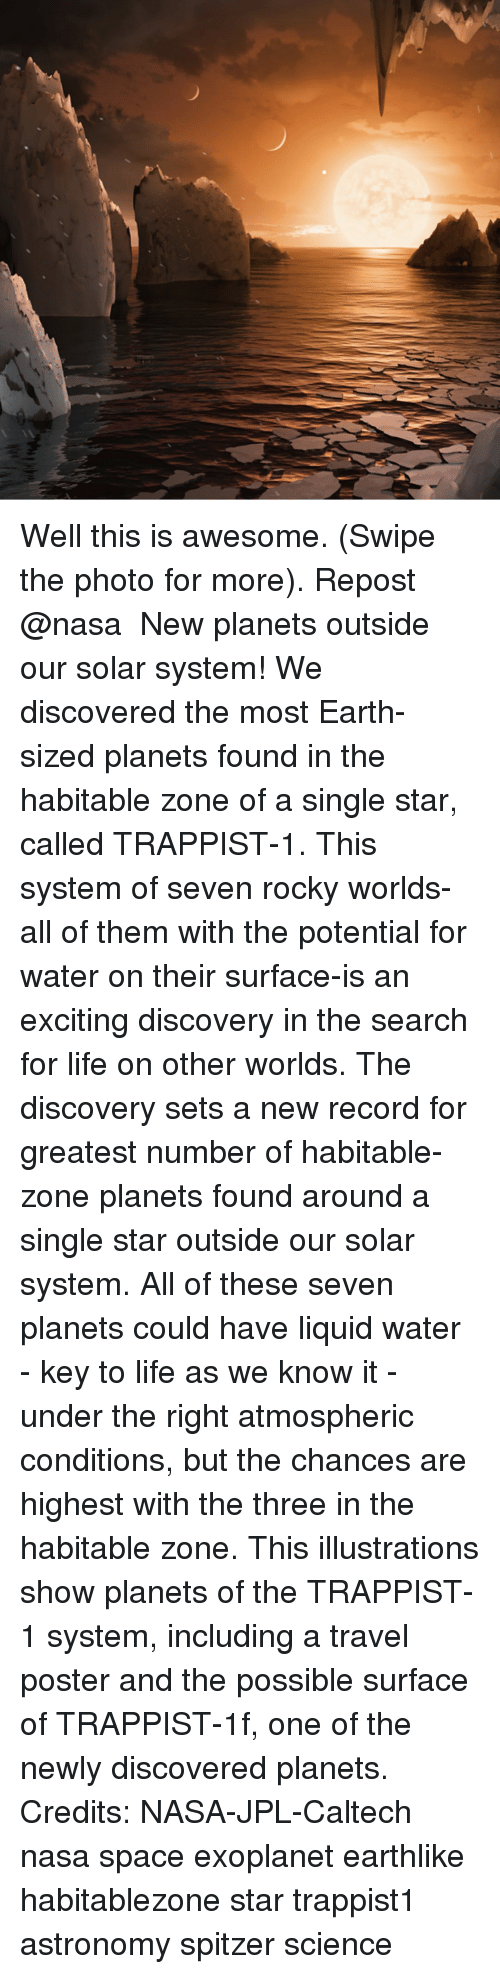 Excitment: Well this is awesome. (Swipe the photo for more). Repost @nasa ・・・ New planets outside our solar system! We discovered the most Earth-sized planets found in the habitable zone of a single star, called TRAPPIST-1. This system of seven rocky worlds-all of them with the potential for water on their surface-is an exciting discovery in the search for life on other worlds. The discovery sets a new record for greatest number of habitable-zone planets found around a single star outside our solar system. All of these seven planets could have liquid water - key to life as we know it - under the right atmospheric conditions, but the chances are highest with the three in the habitable zone. This illustrations show planets of the TRAPPIST-1 system, including a travel poster and the possible surface of TRAPPIST-1f, one of the newly discovered planets. Credits: NASA-JPL-Caltech nasa space exoplanet earthlike habitablezone star trappist1 astronomy spitzer science